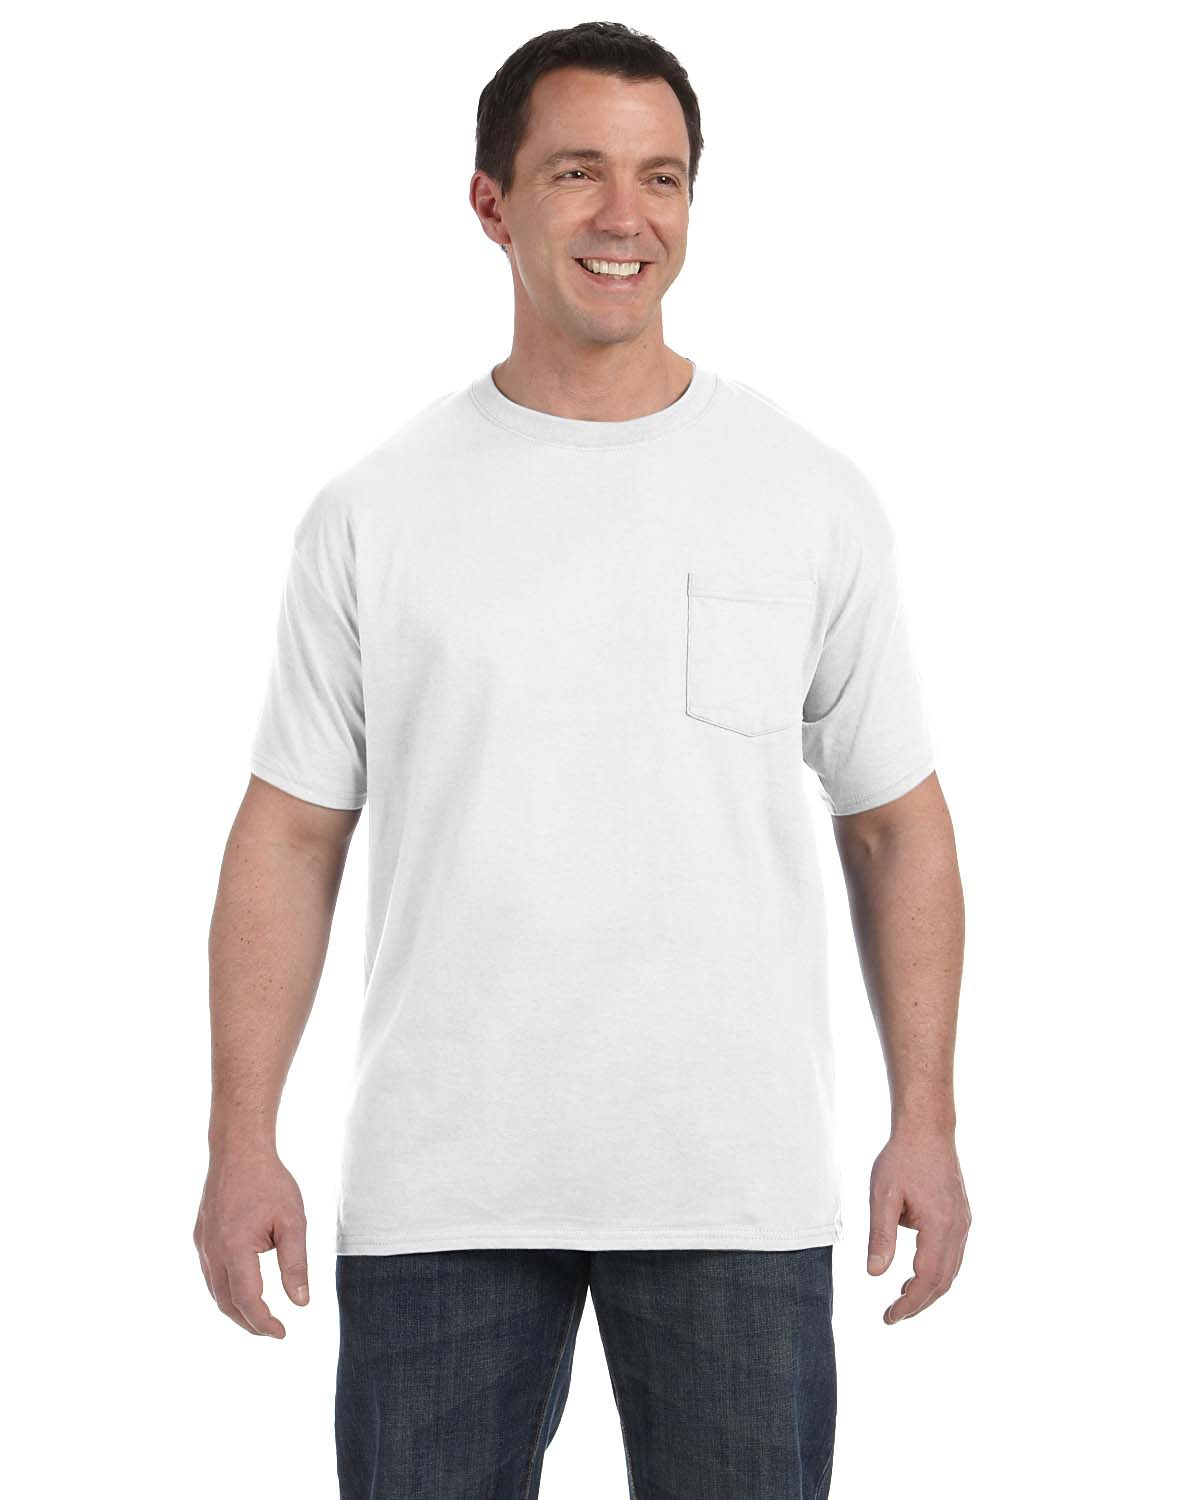 Hanes H5590 Men 6.1 oz. Tagless ComfortSoft Pocket T-Shirt White at GotApparel